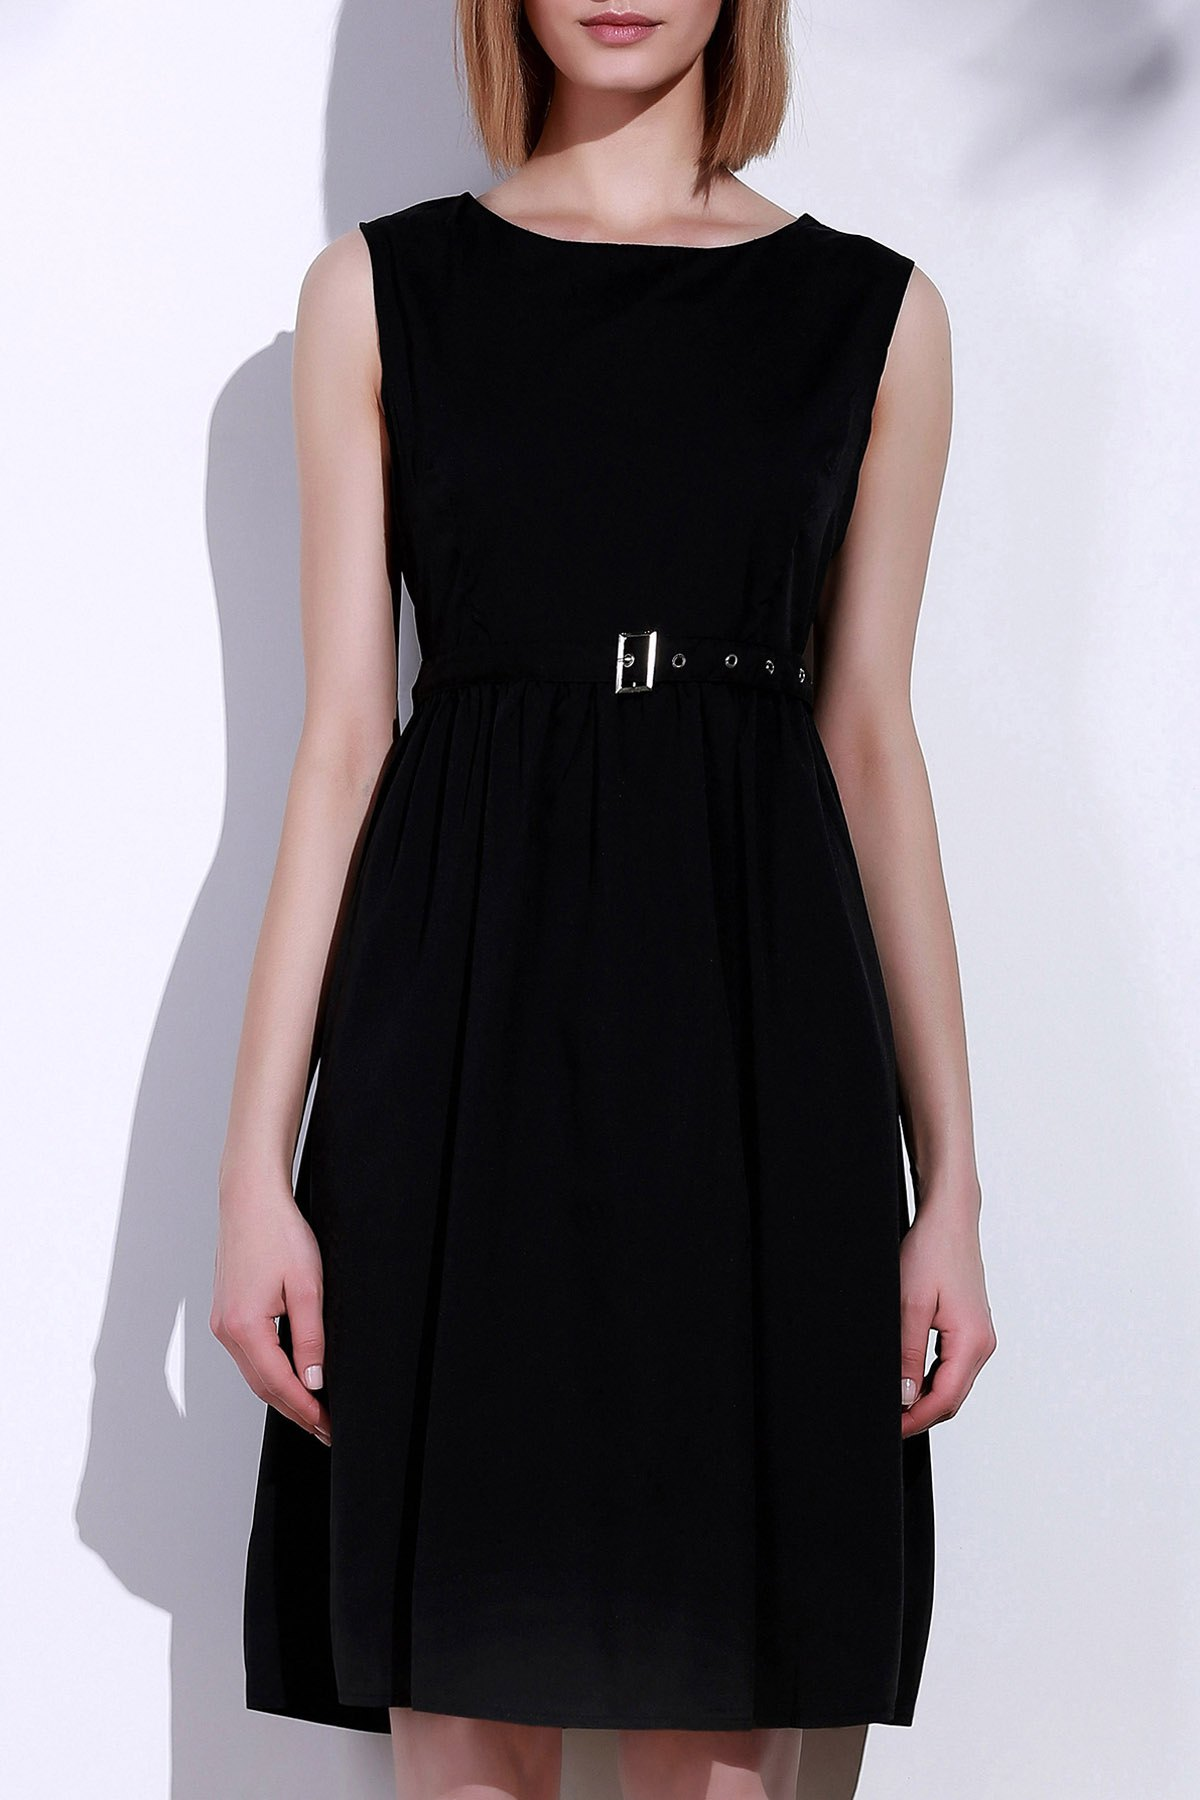 Women's Retro Style Sleeveless Solid Color Dress